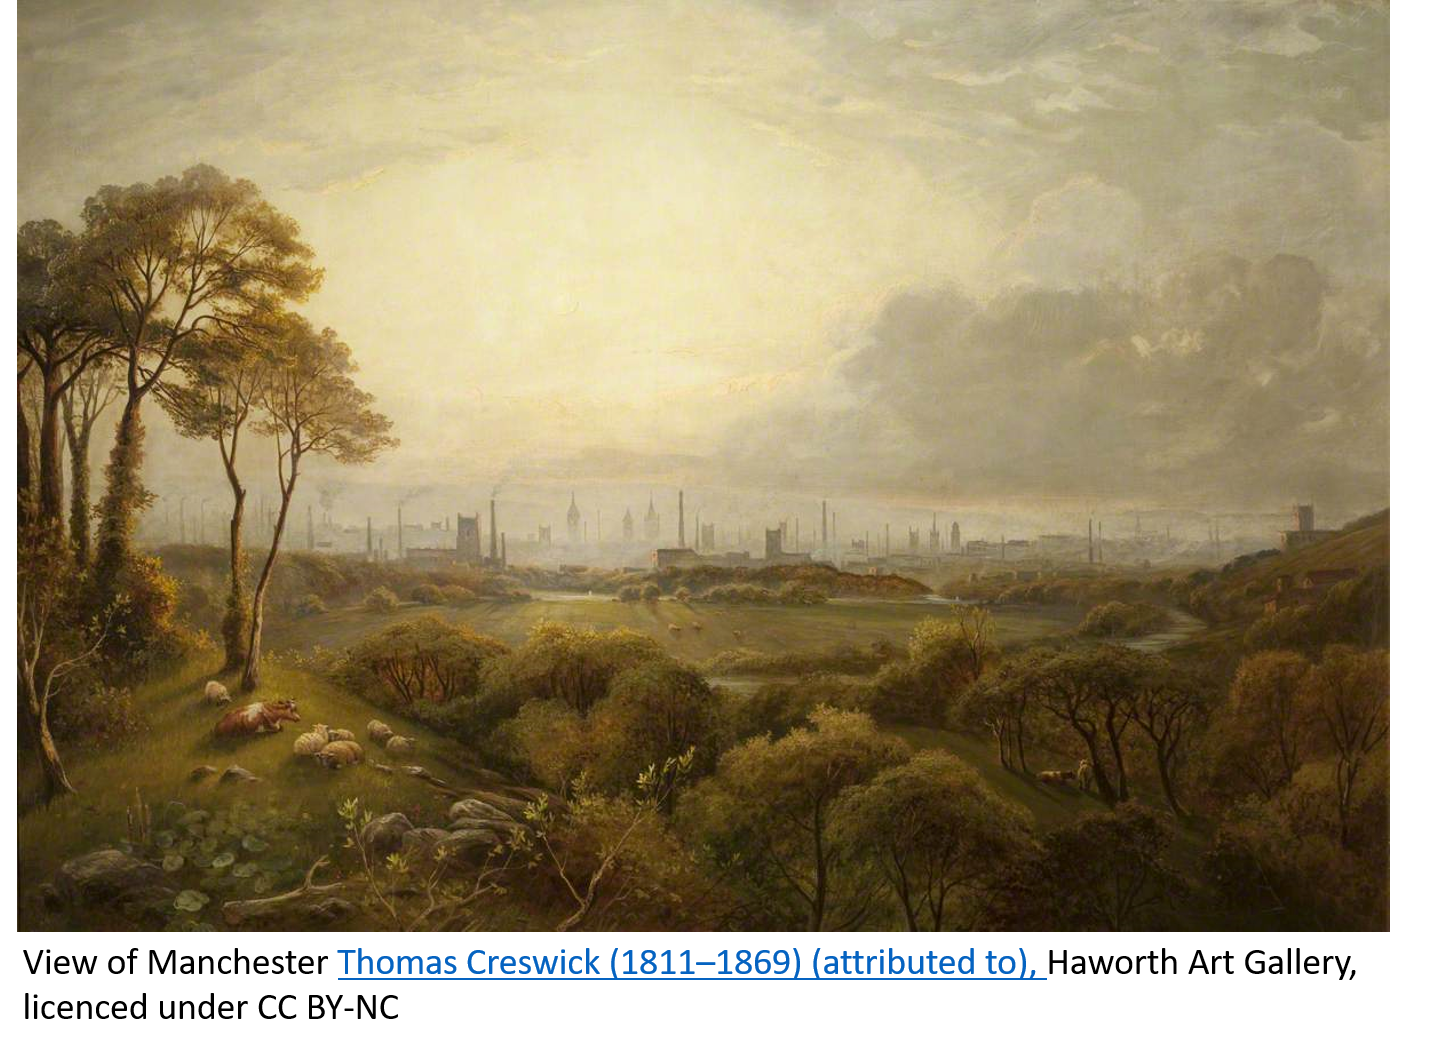 Manchester mid-19th century